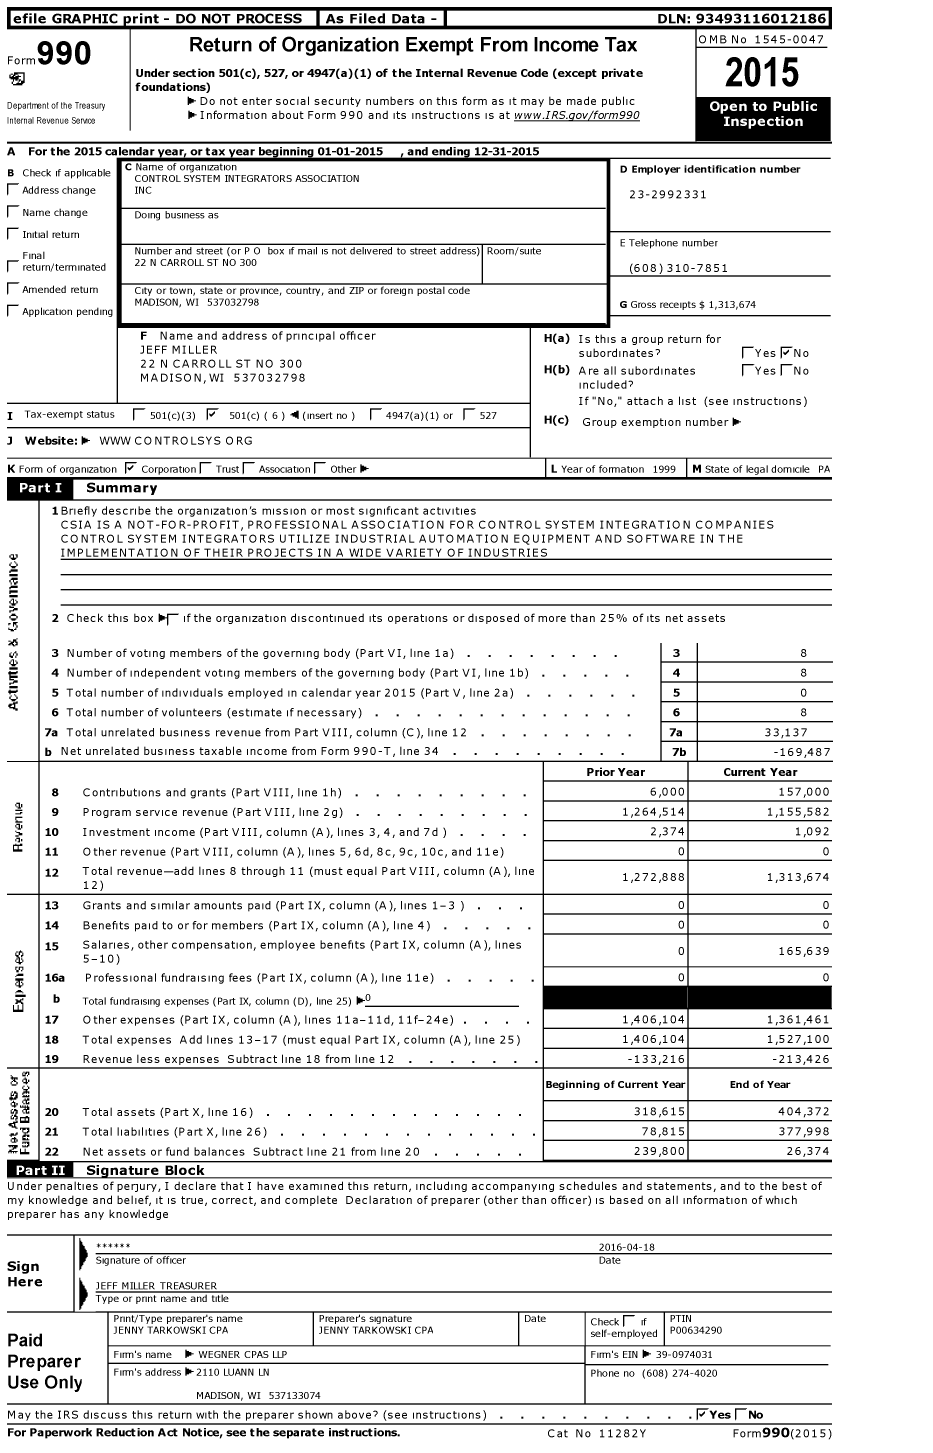 Image of first page of 2015 Form 990O for Control Systems Integrators Association (CSIA)